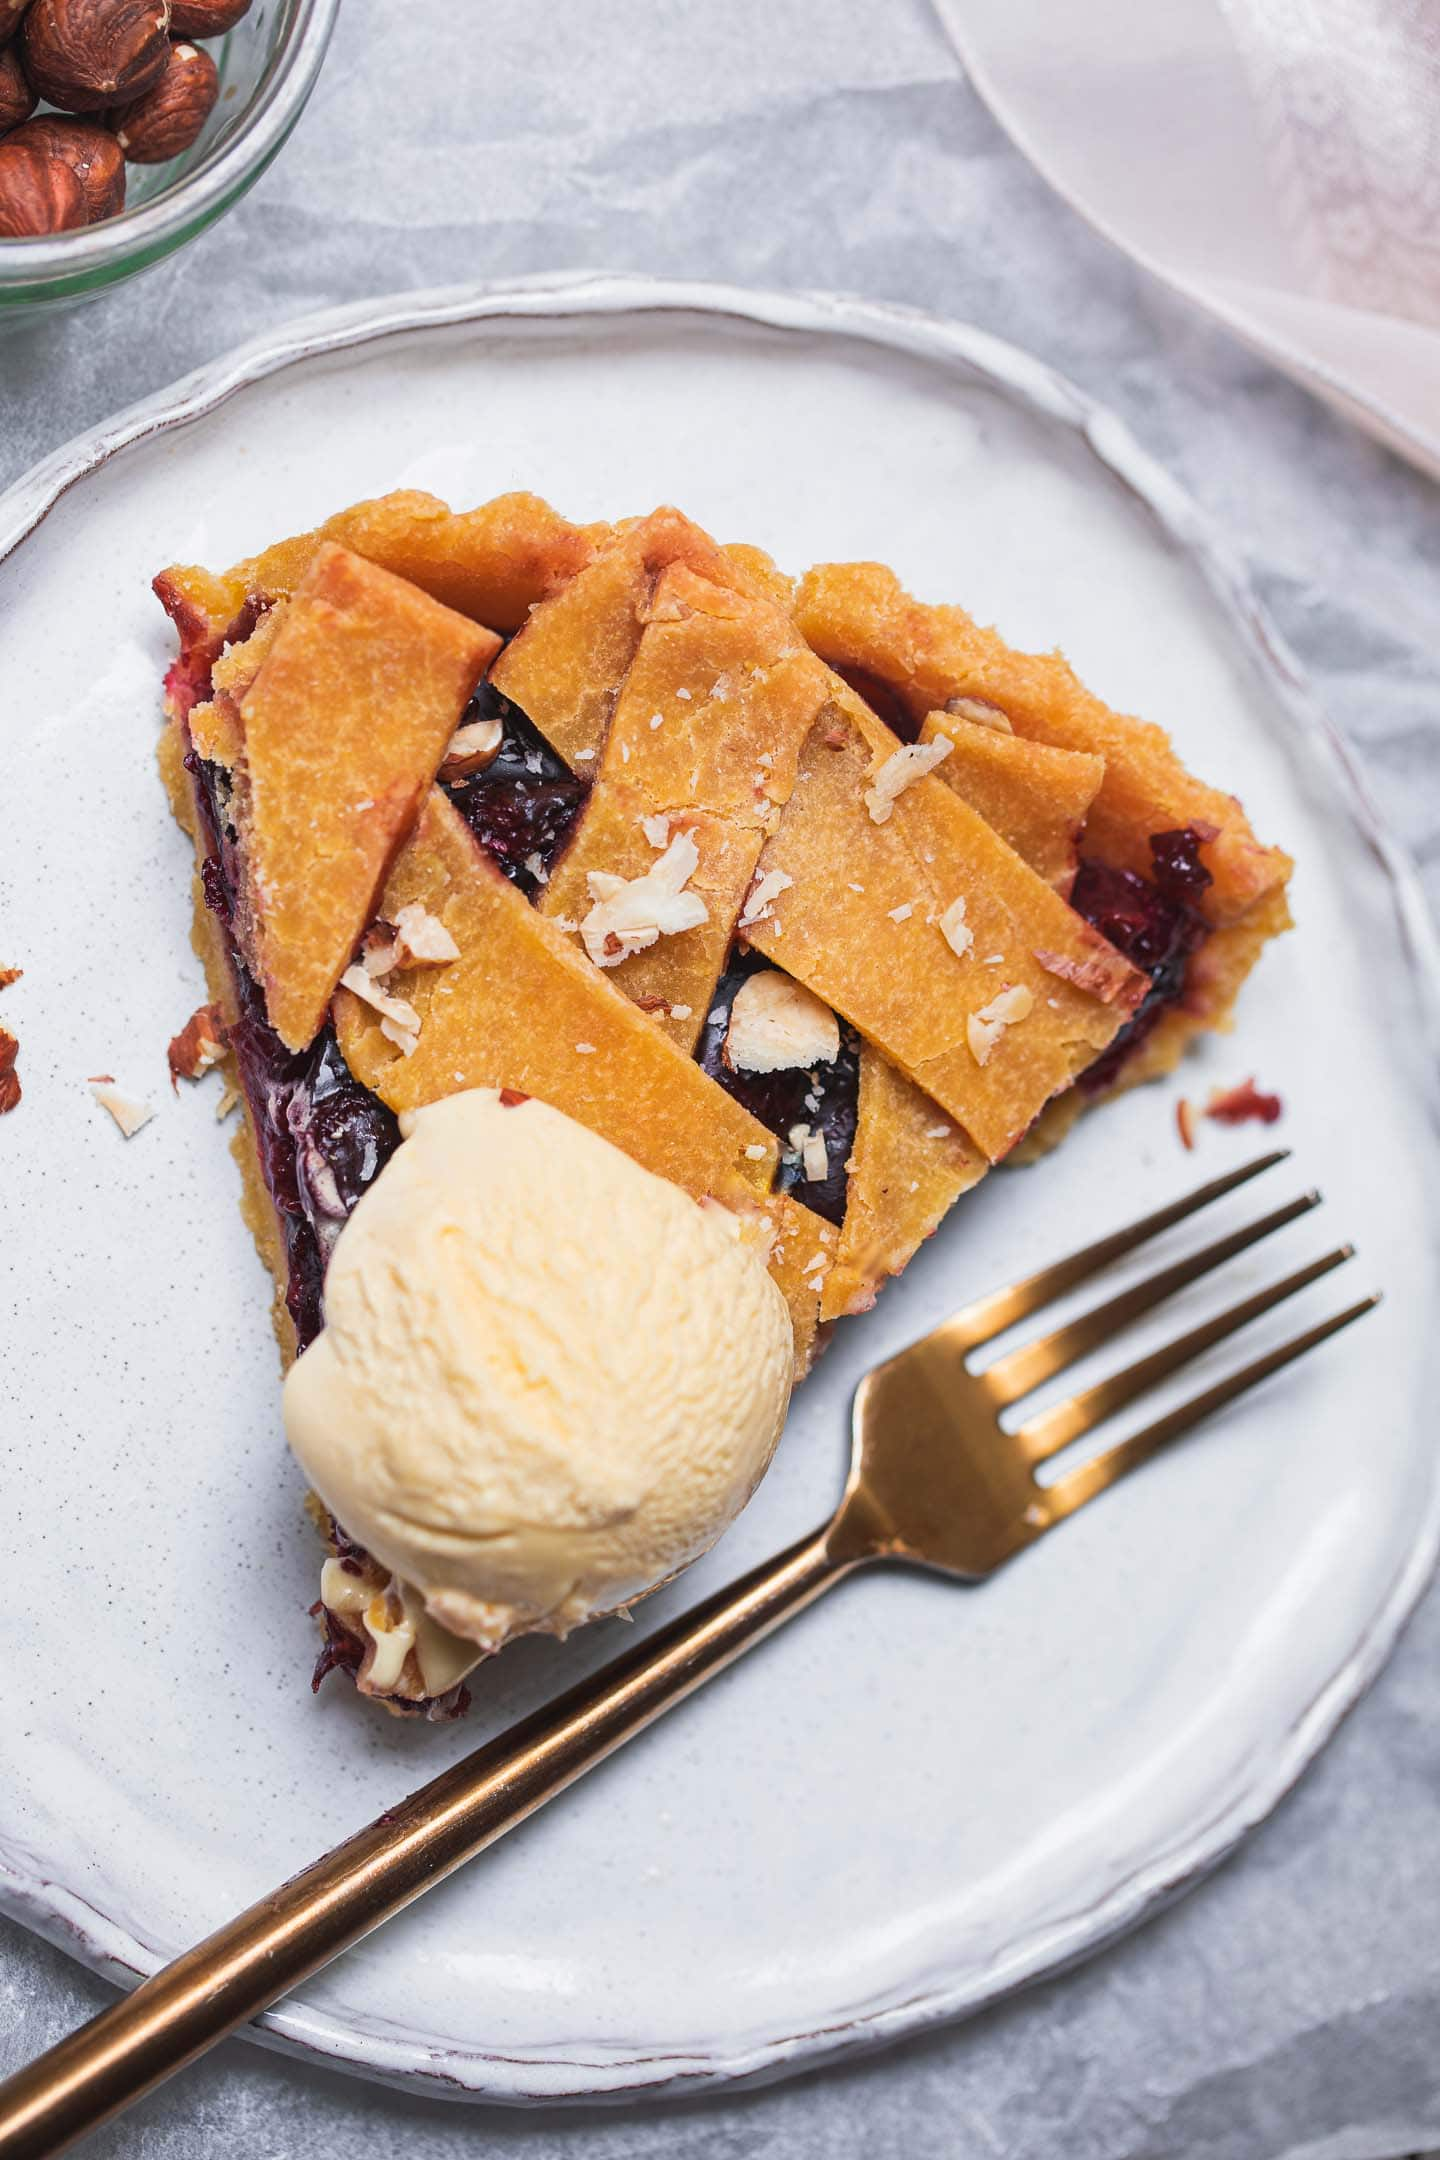 Vegan cherry pie with dairy-free ice cream on top